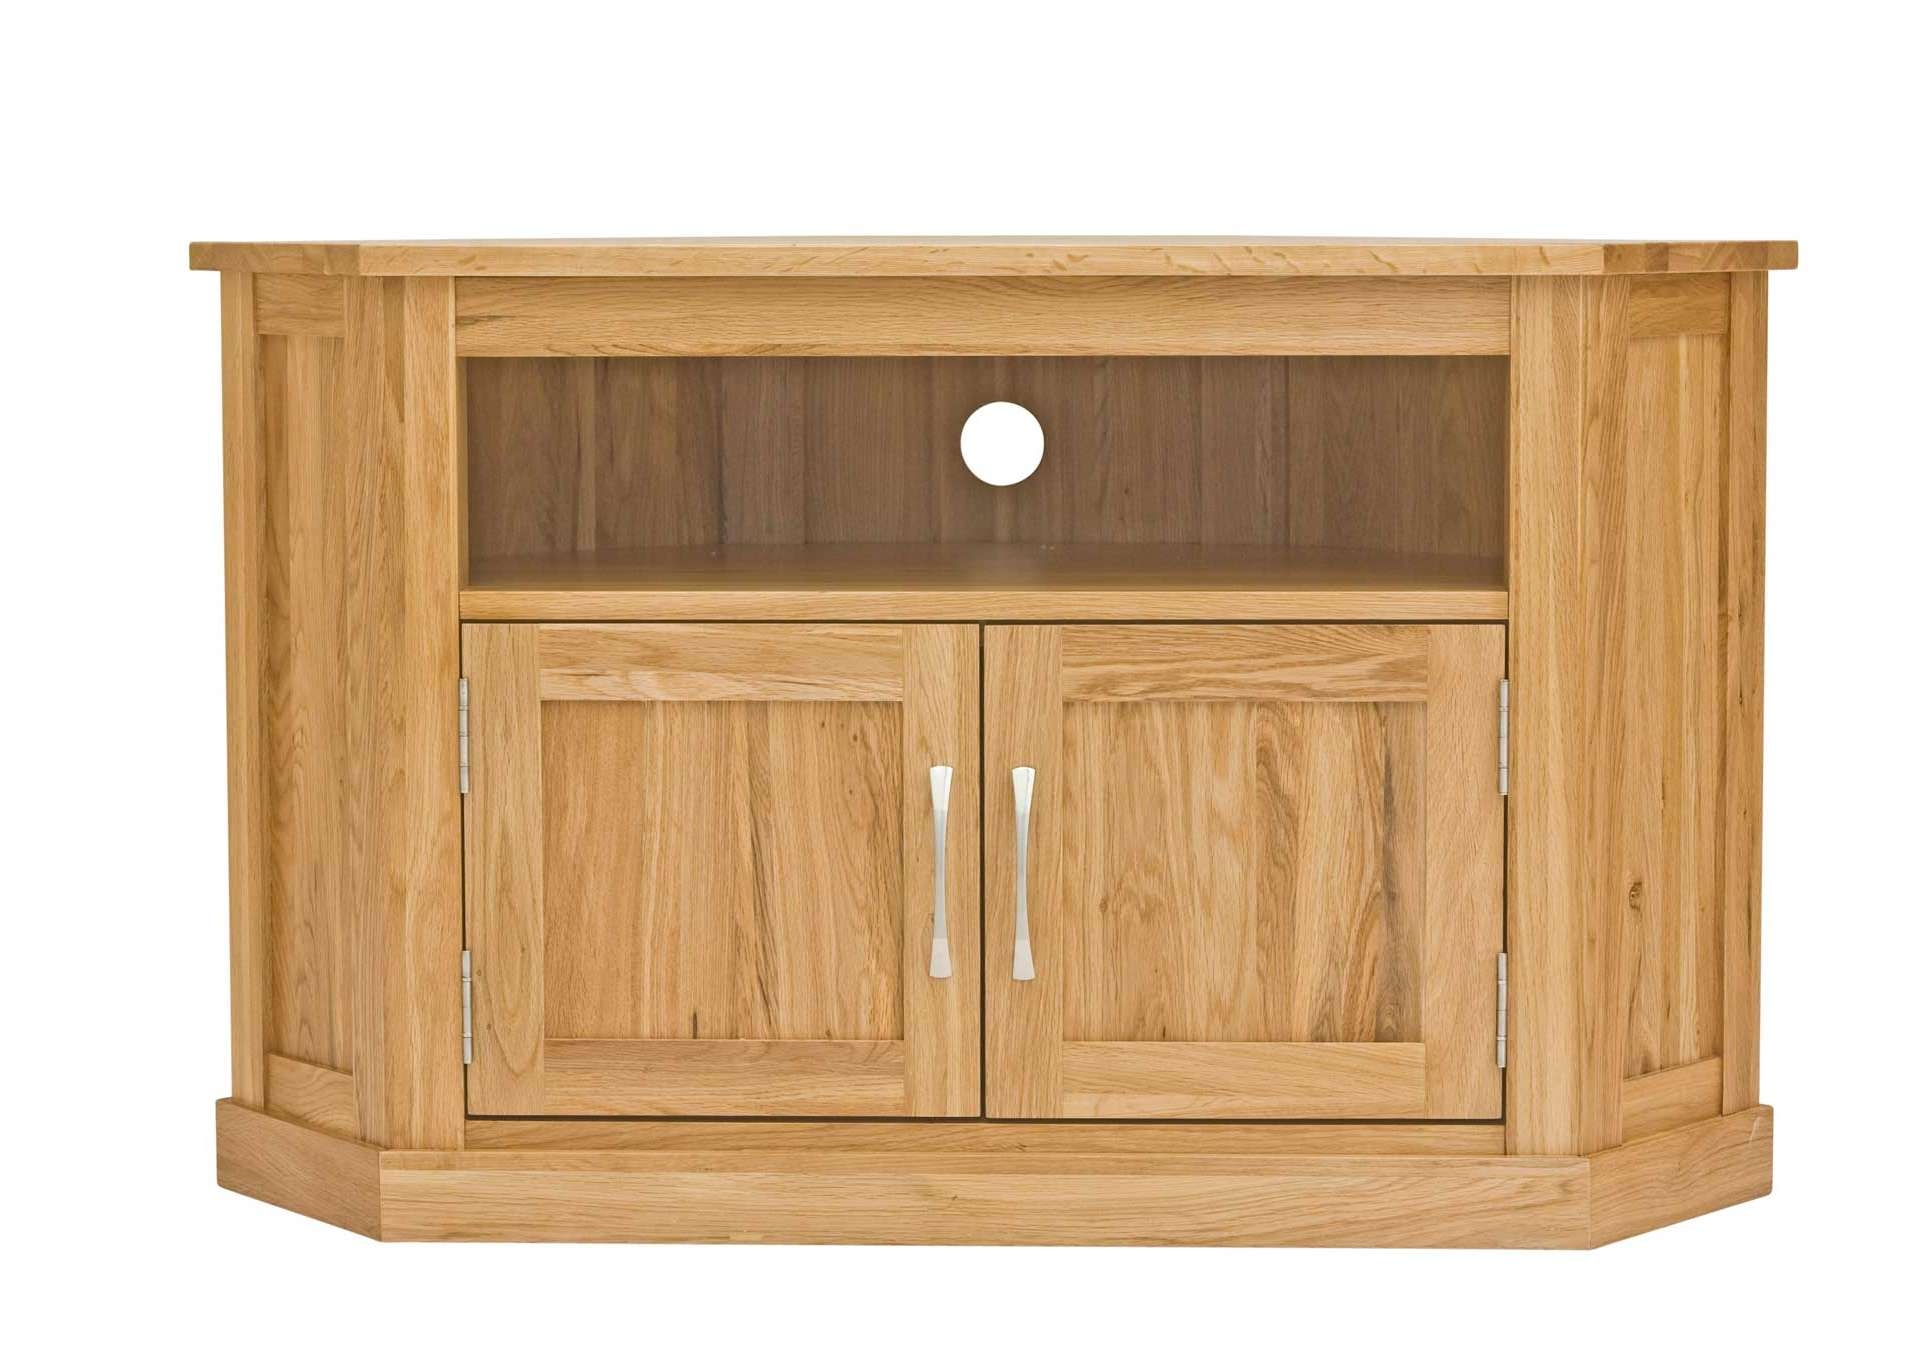 Classic Oak Corner Television Cabinet | Hampshire Furniture With Regard To Oak Corner Tv Cabinets (View 3 of 20)